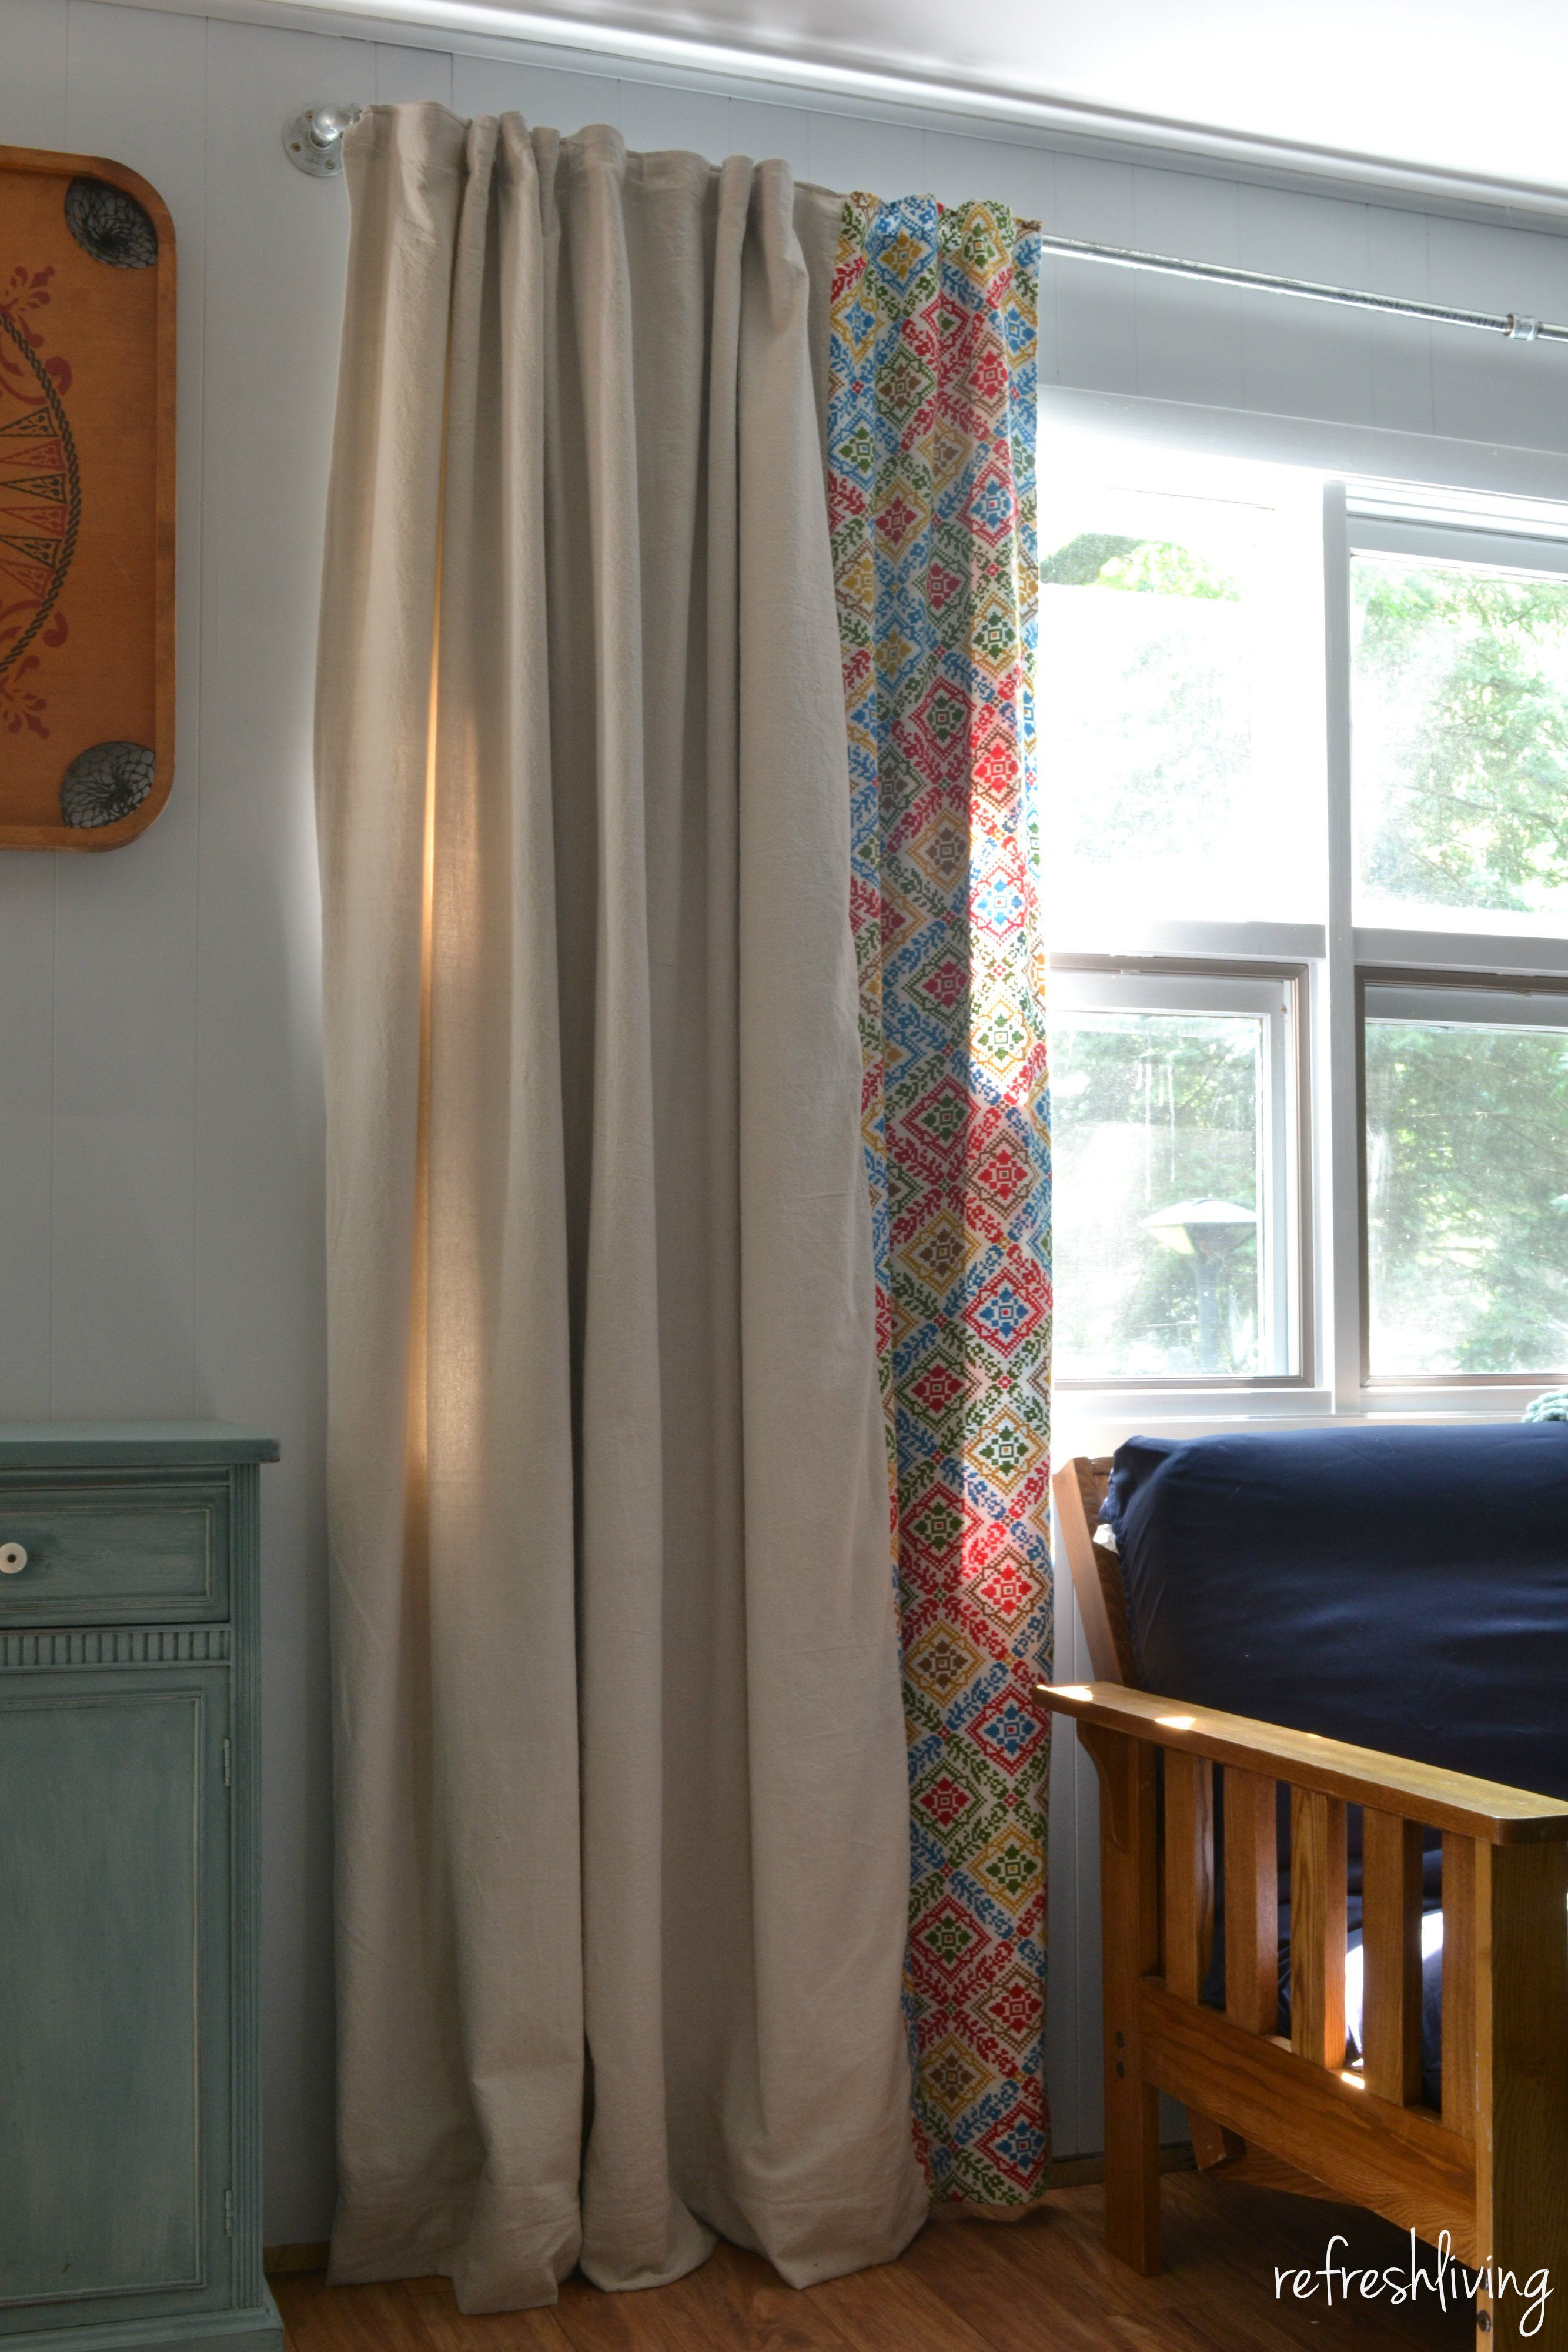 Cheap window coverings  diy drop cloth curtains modified for a large window  drop cloth